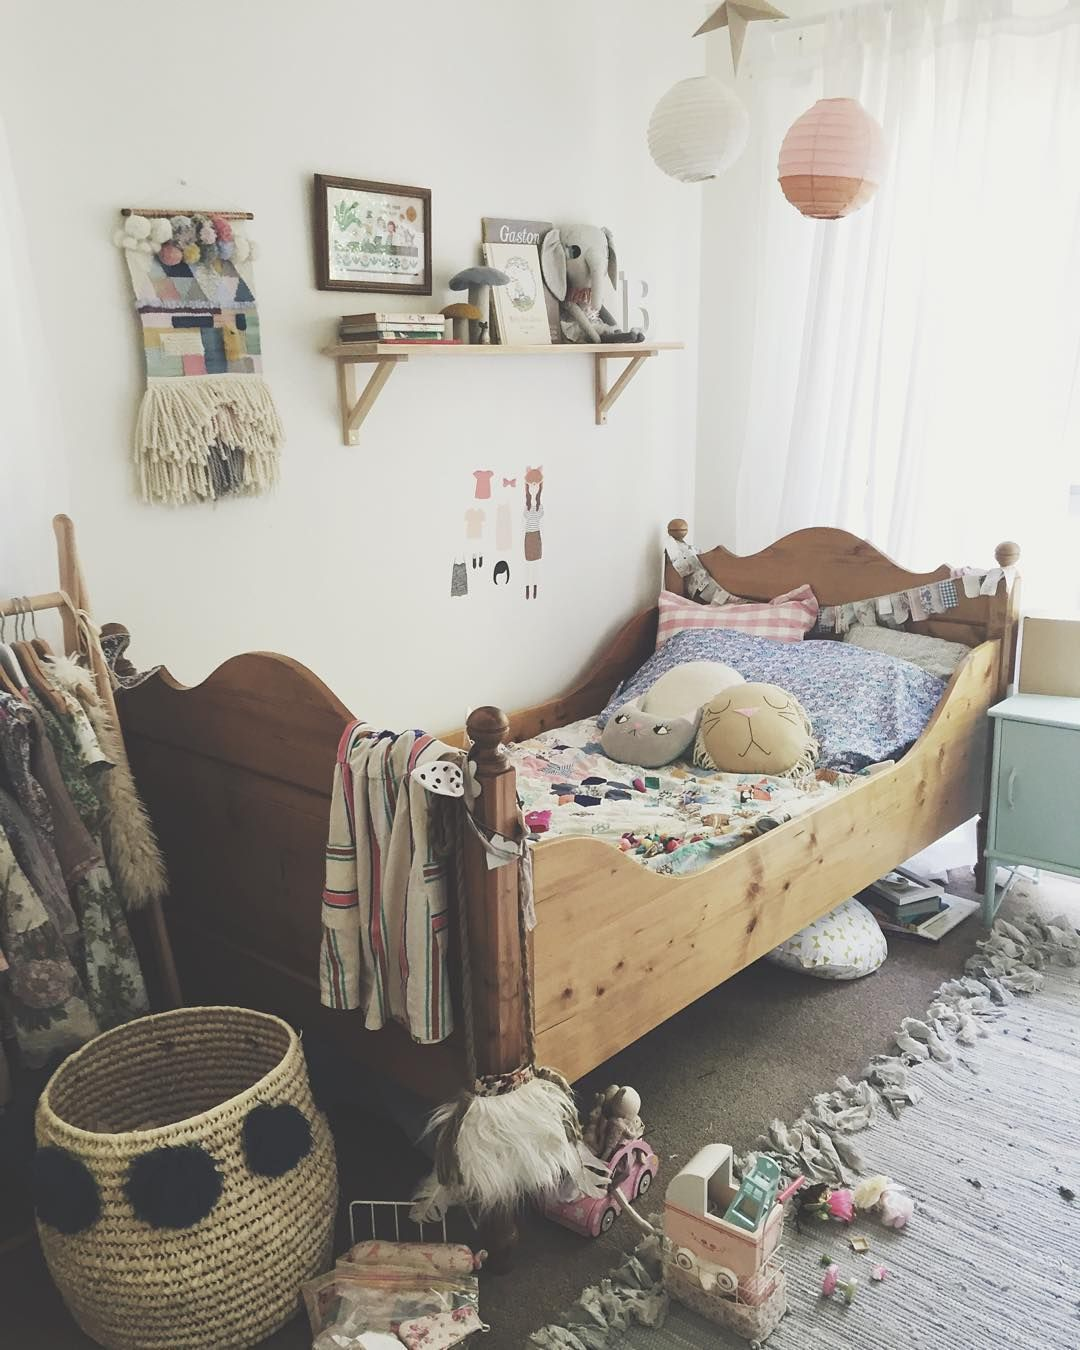 Kids Room Decor Ideas Pinterest: This Pin Was Discovered By MilK Magazine. Discover (and